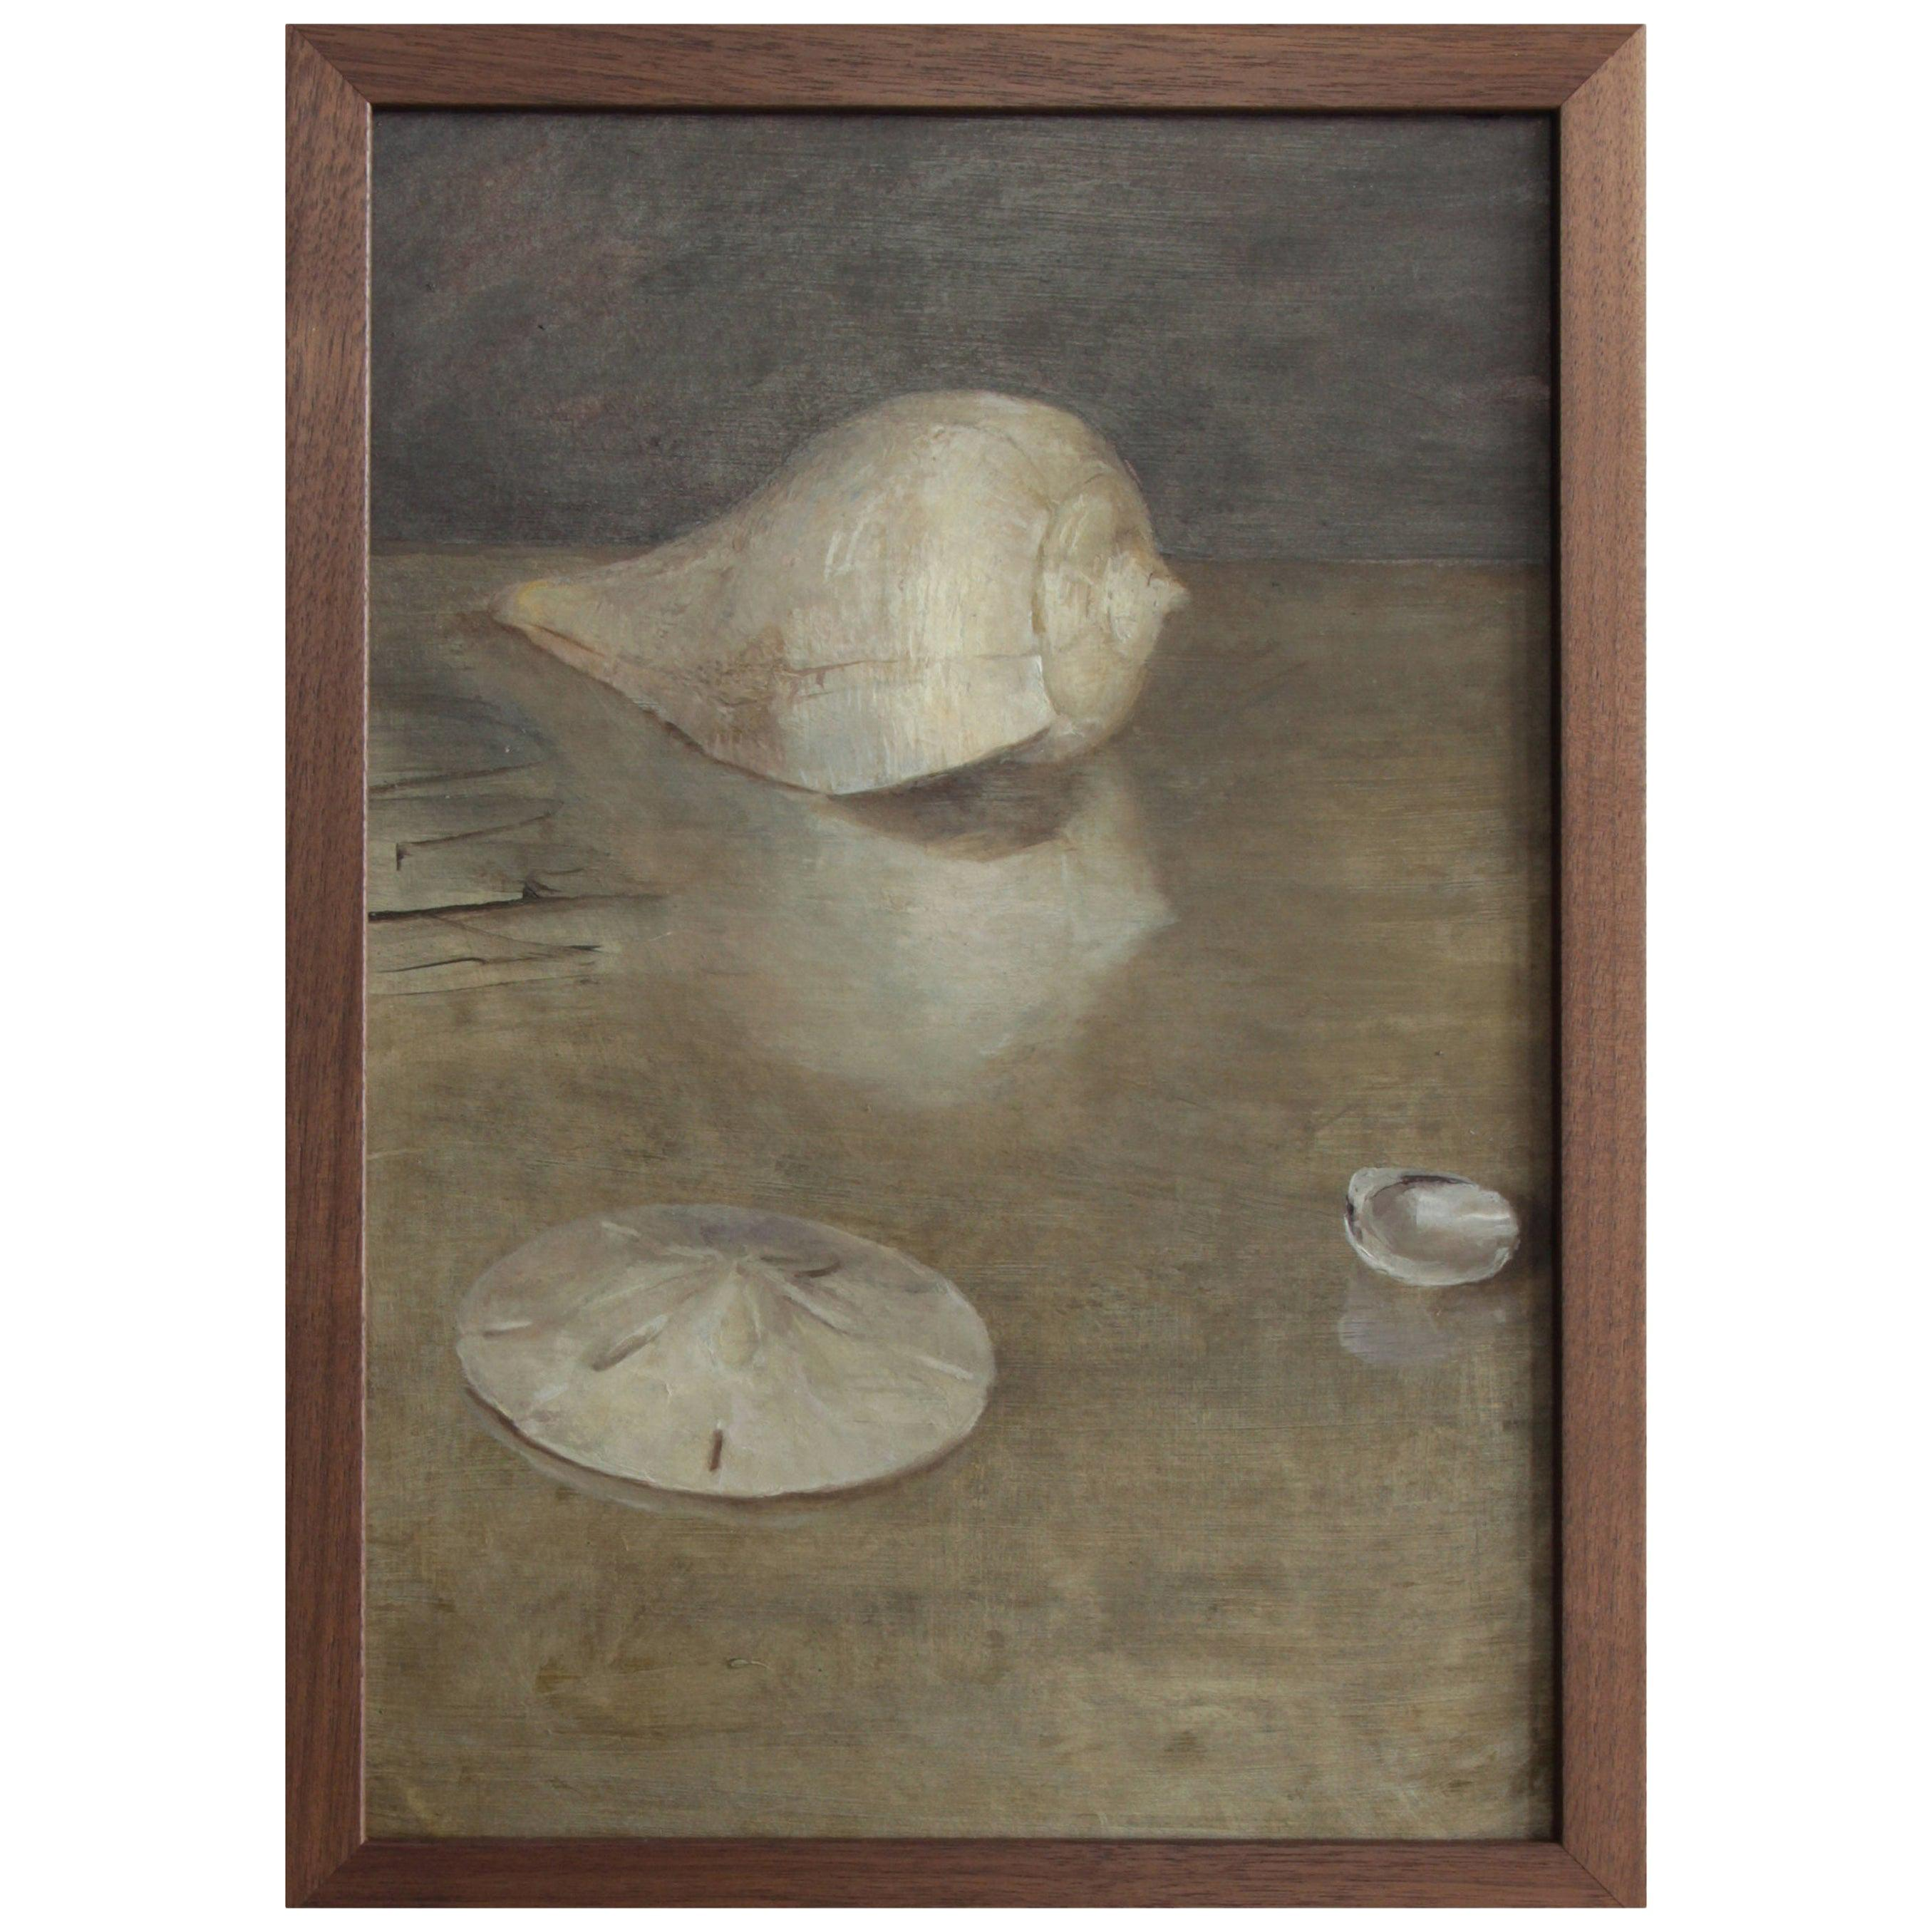 Seashells and Sand Dollar, Oil on Panel, Still Life Painting by Helen Oh